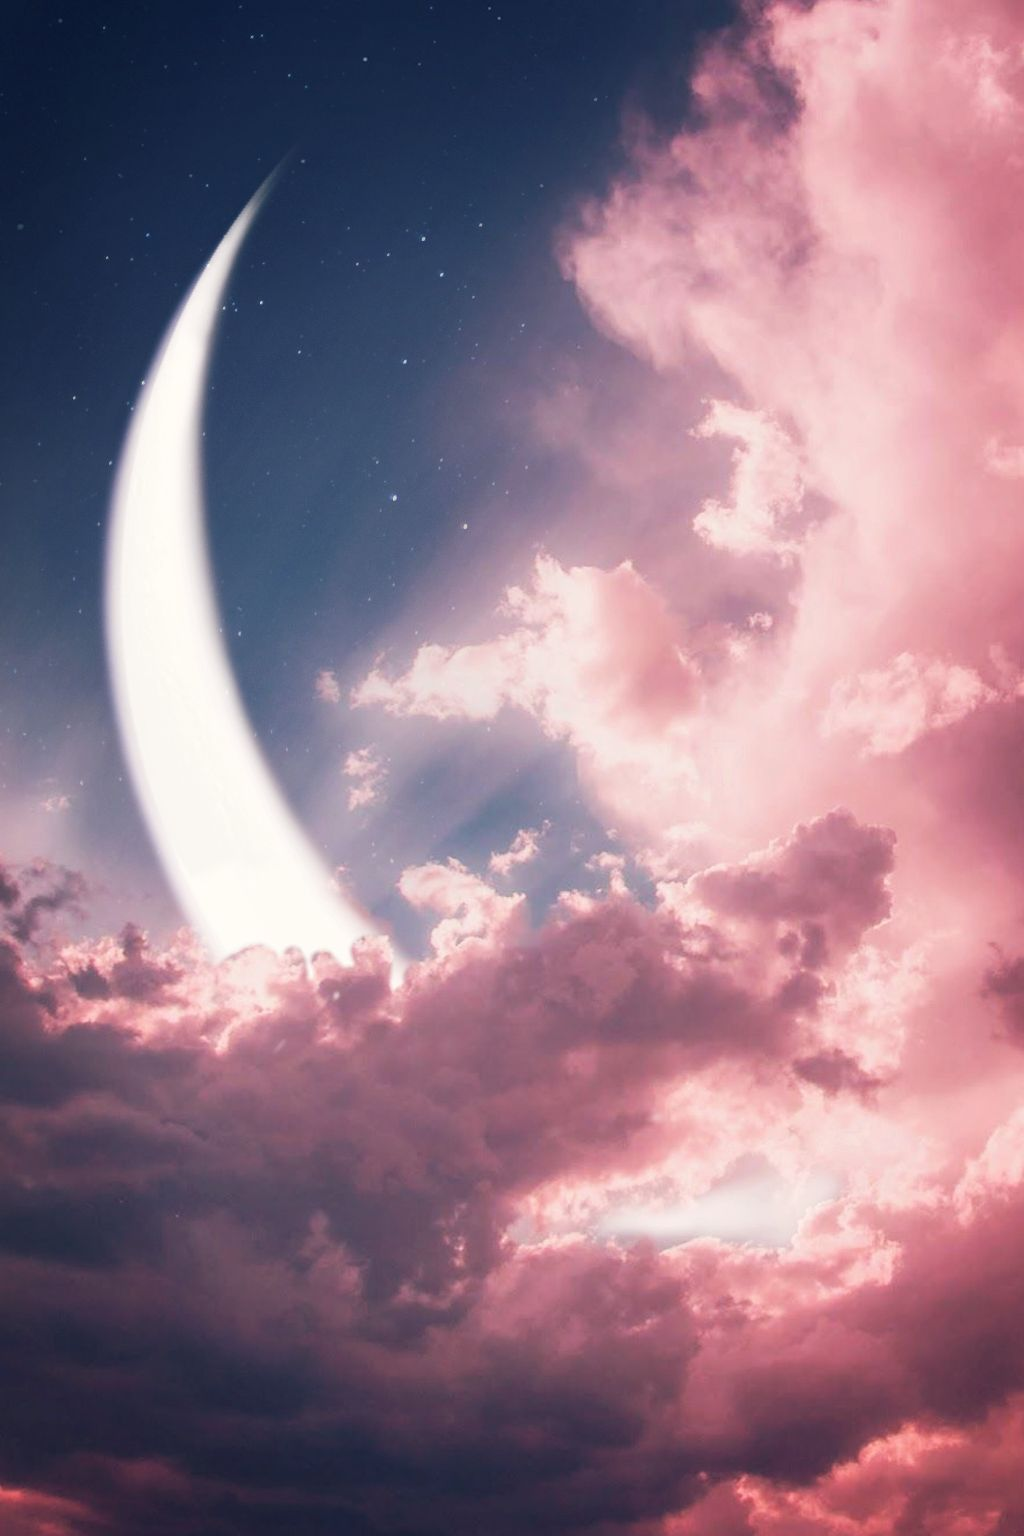 """""""aLwaYs RememBer We aRe unDer tHe SaMe SkY,LoOKinG aT tHe SaMe moOn.🌙""""   https://m.youtube.com/watch?v=fYg28dmBeyY . . . #blue #moon #sky #coulds #pinksky #relaxation #chill #dream #imagination #pink #madewithpicsart #moonlight #background #wallpaper  #freetoedit"""